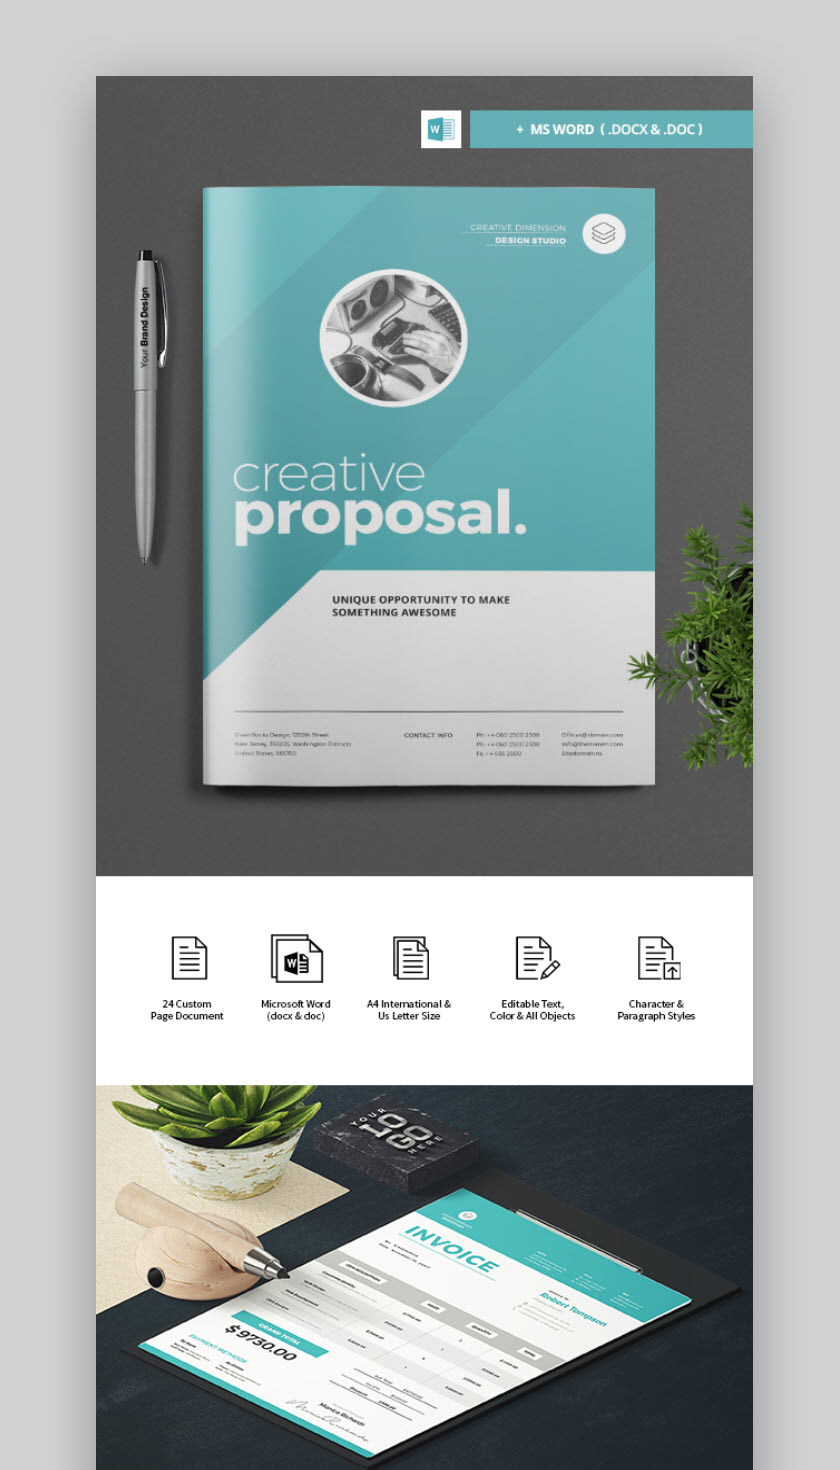 With A Single Click You Can Customize The Colors On The Easy To Use Professional  Proposal Template. Choose Between 24 Pages  Use Them All, Or Just A Few.